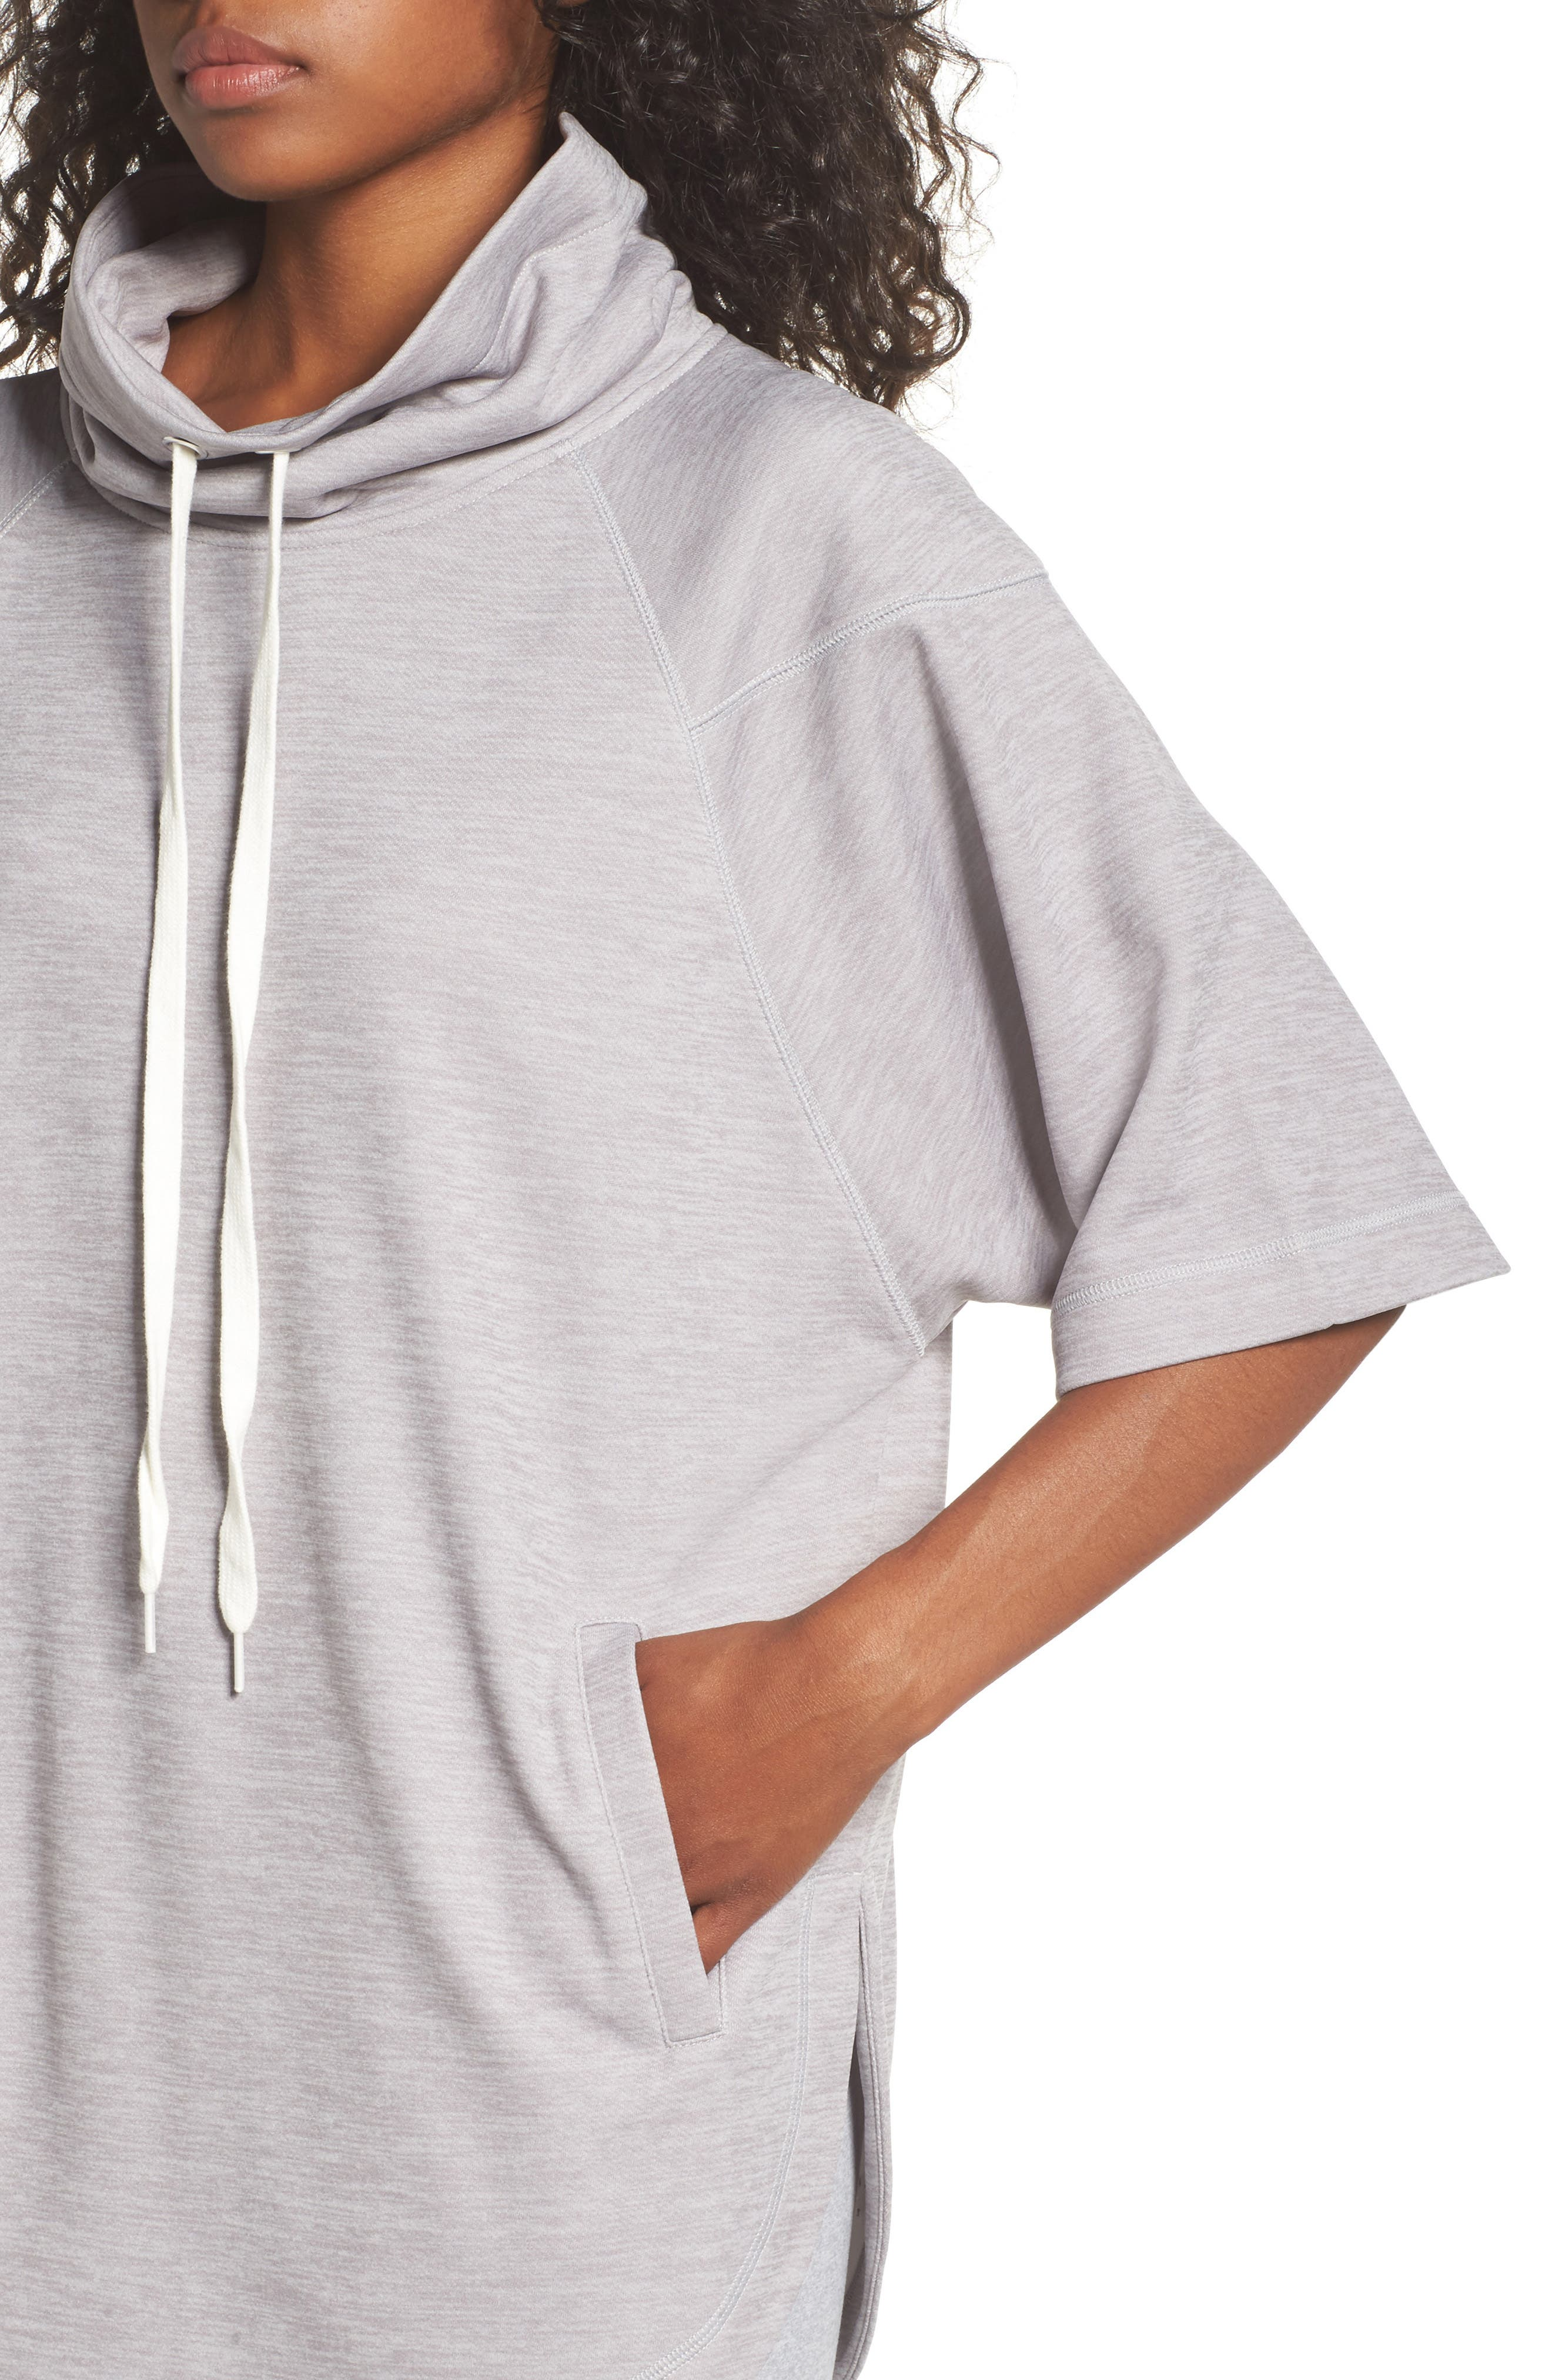 Get It Girl Pullover,                             Alternate thumbnail 4, color,                             Grey Wolf